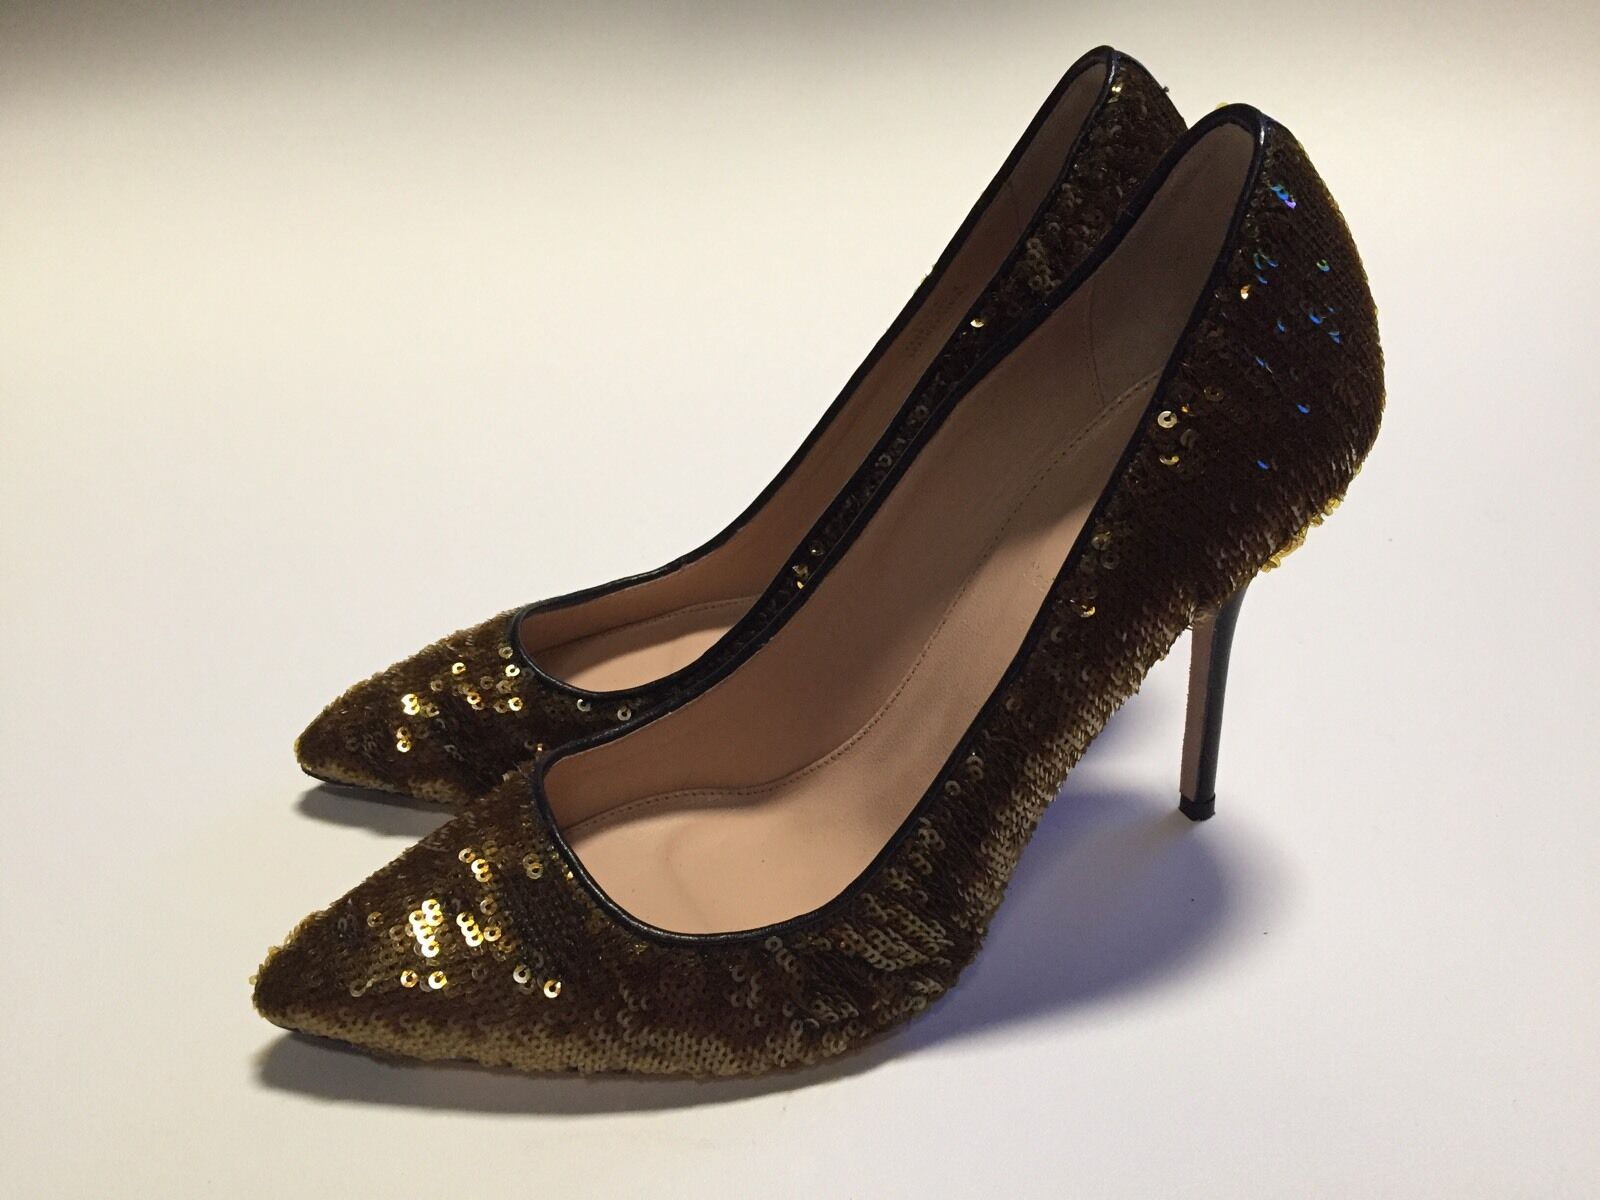 J Crew Roxie Sequin Pumps Größe 9.5 Style# C0454 298 Saffron Sequins New